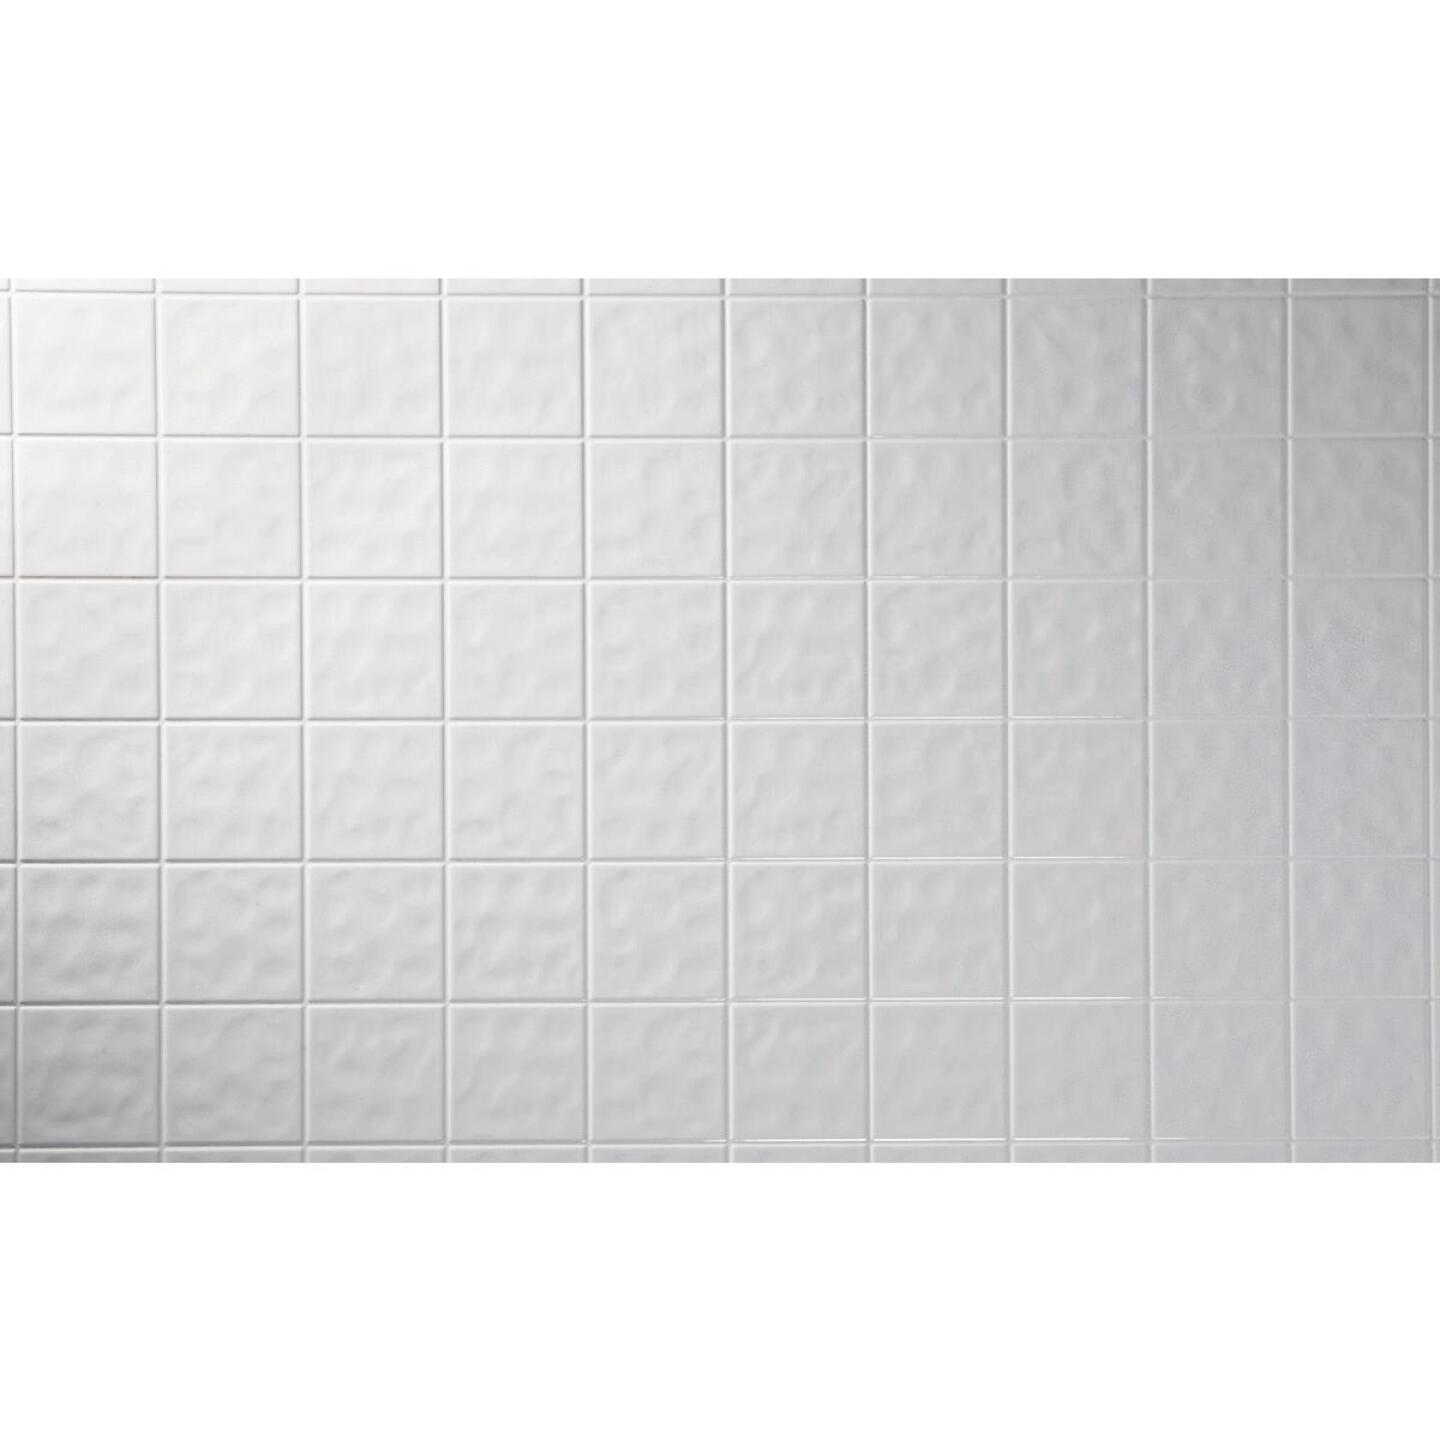 DPI AquaTile 4 Ft. x 8 Ft. x 1/8 In. White Tileboard Wall Paneling Image 2